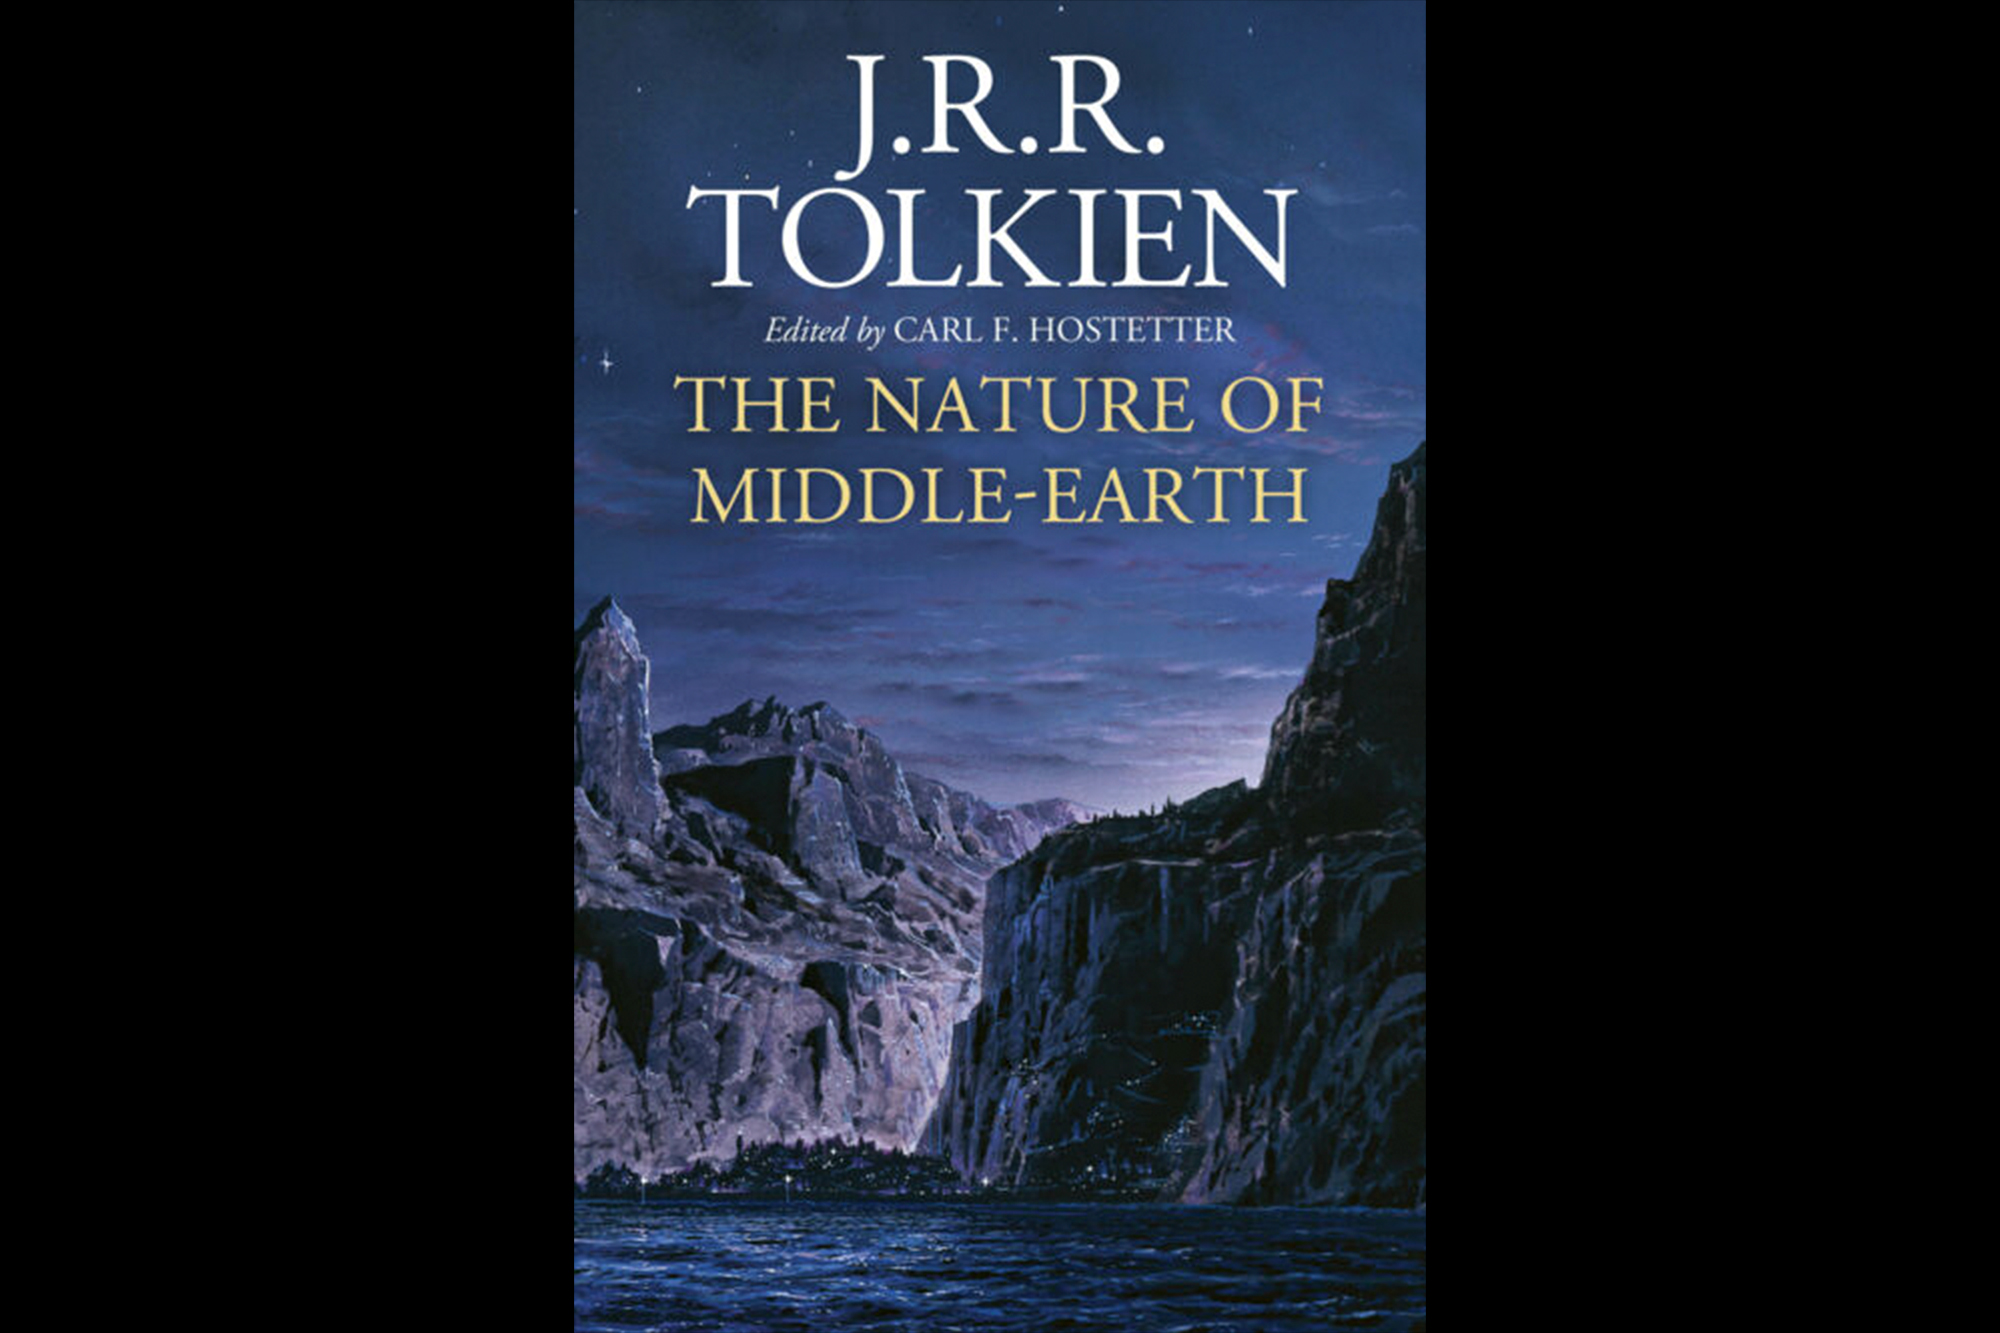 The Nature of Middle-Earth